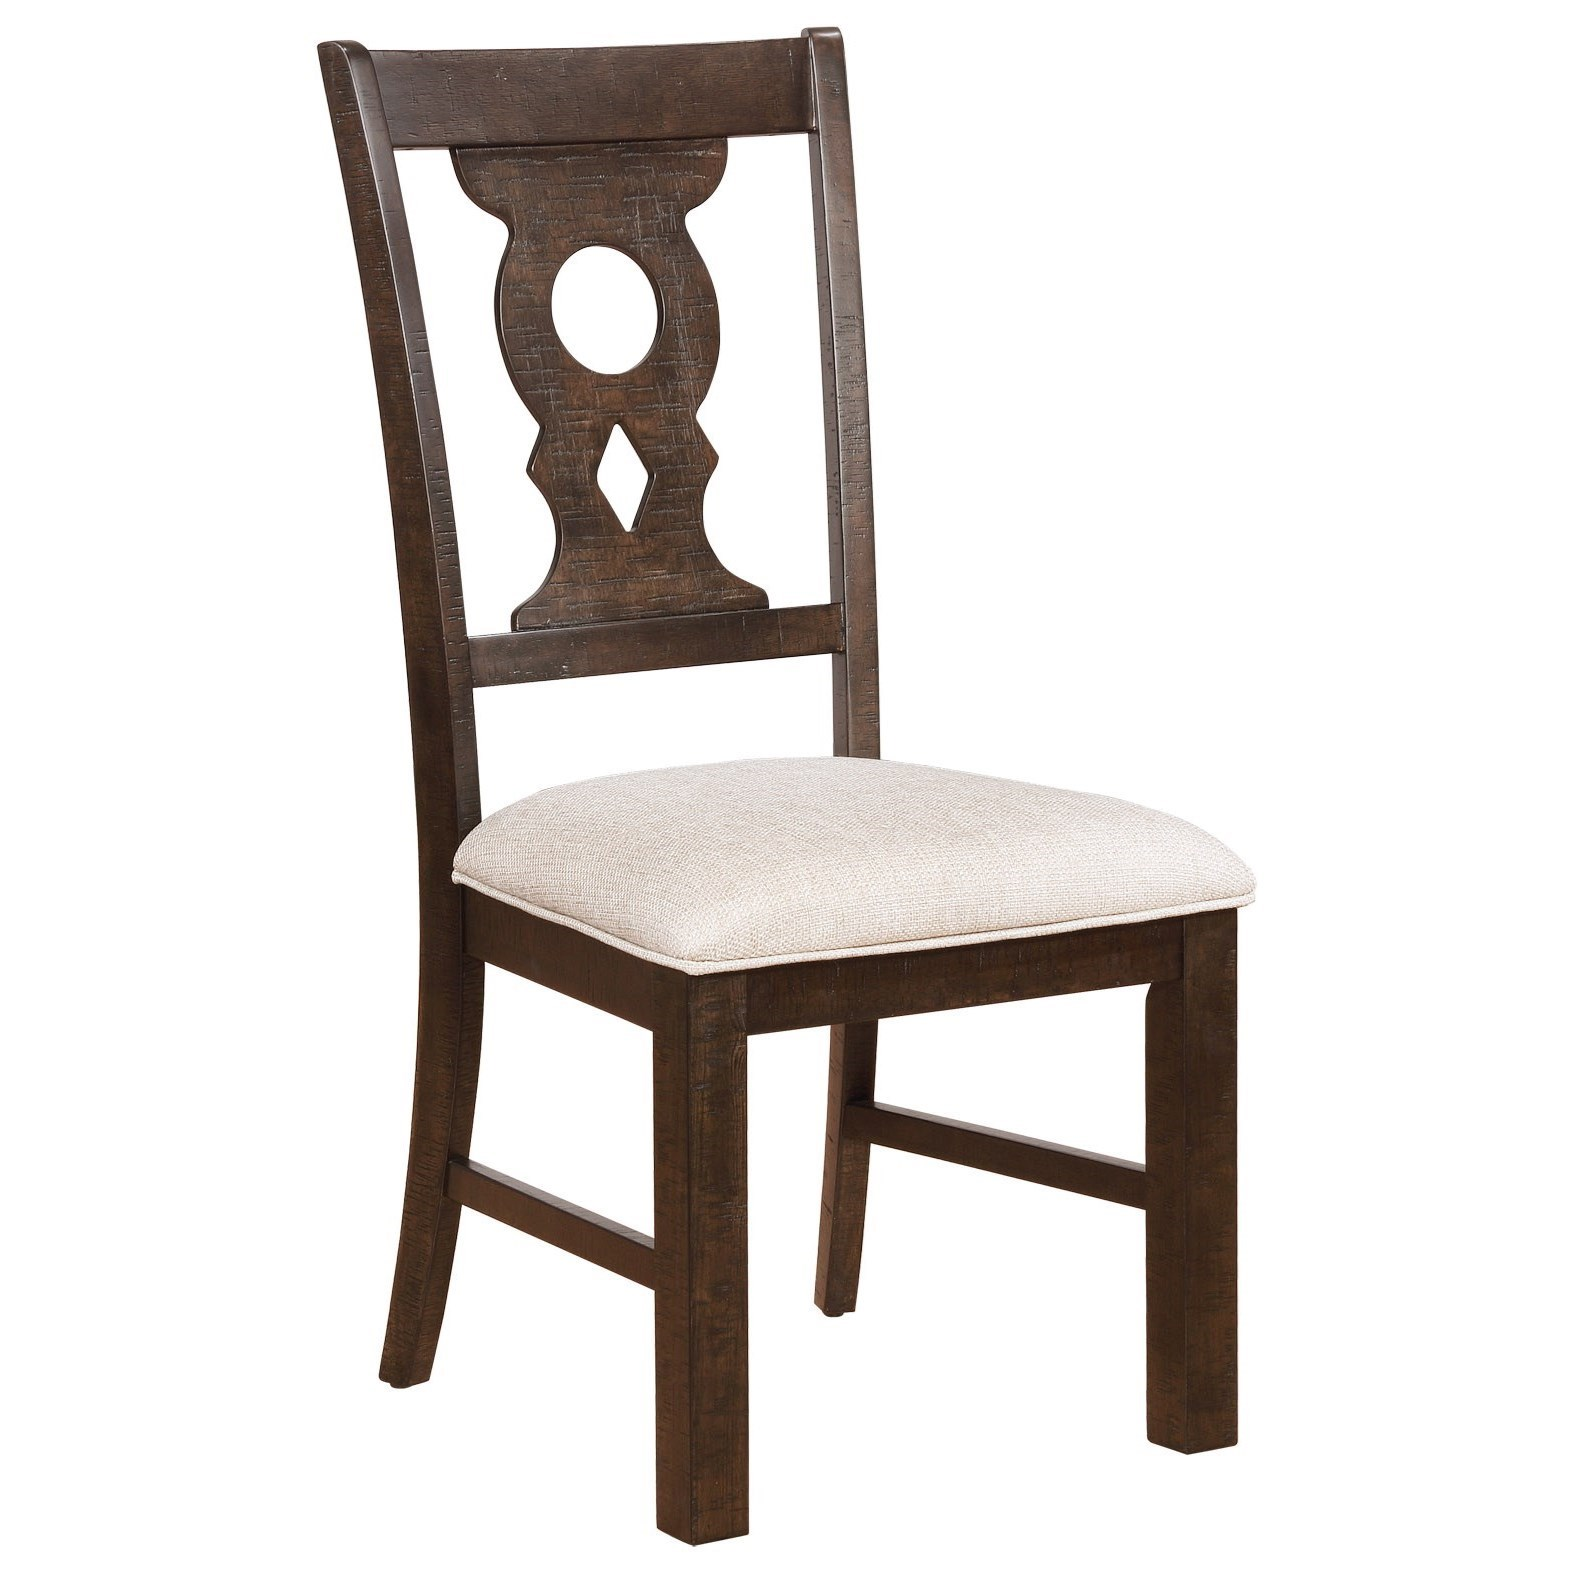 Avalon Furniture Lancaster Keyhole Splat Dining Chair With Upholstered Seat    Zaku0027s Fine Furniture   Dining Side Chairs